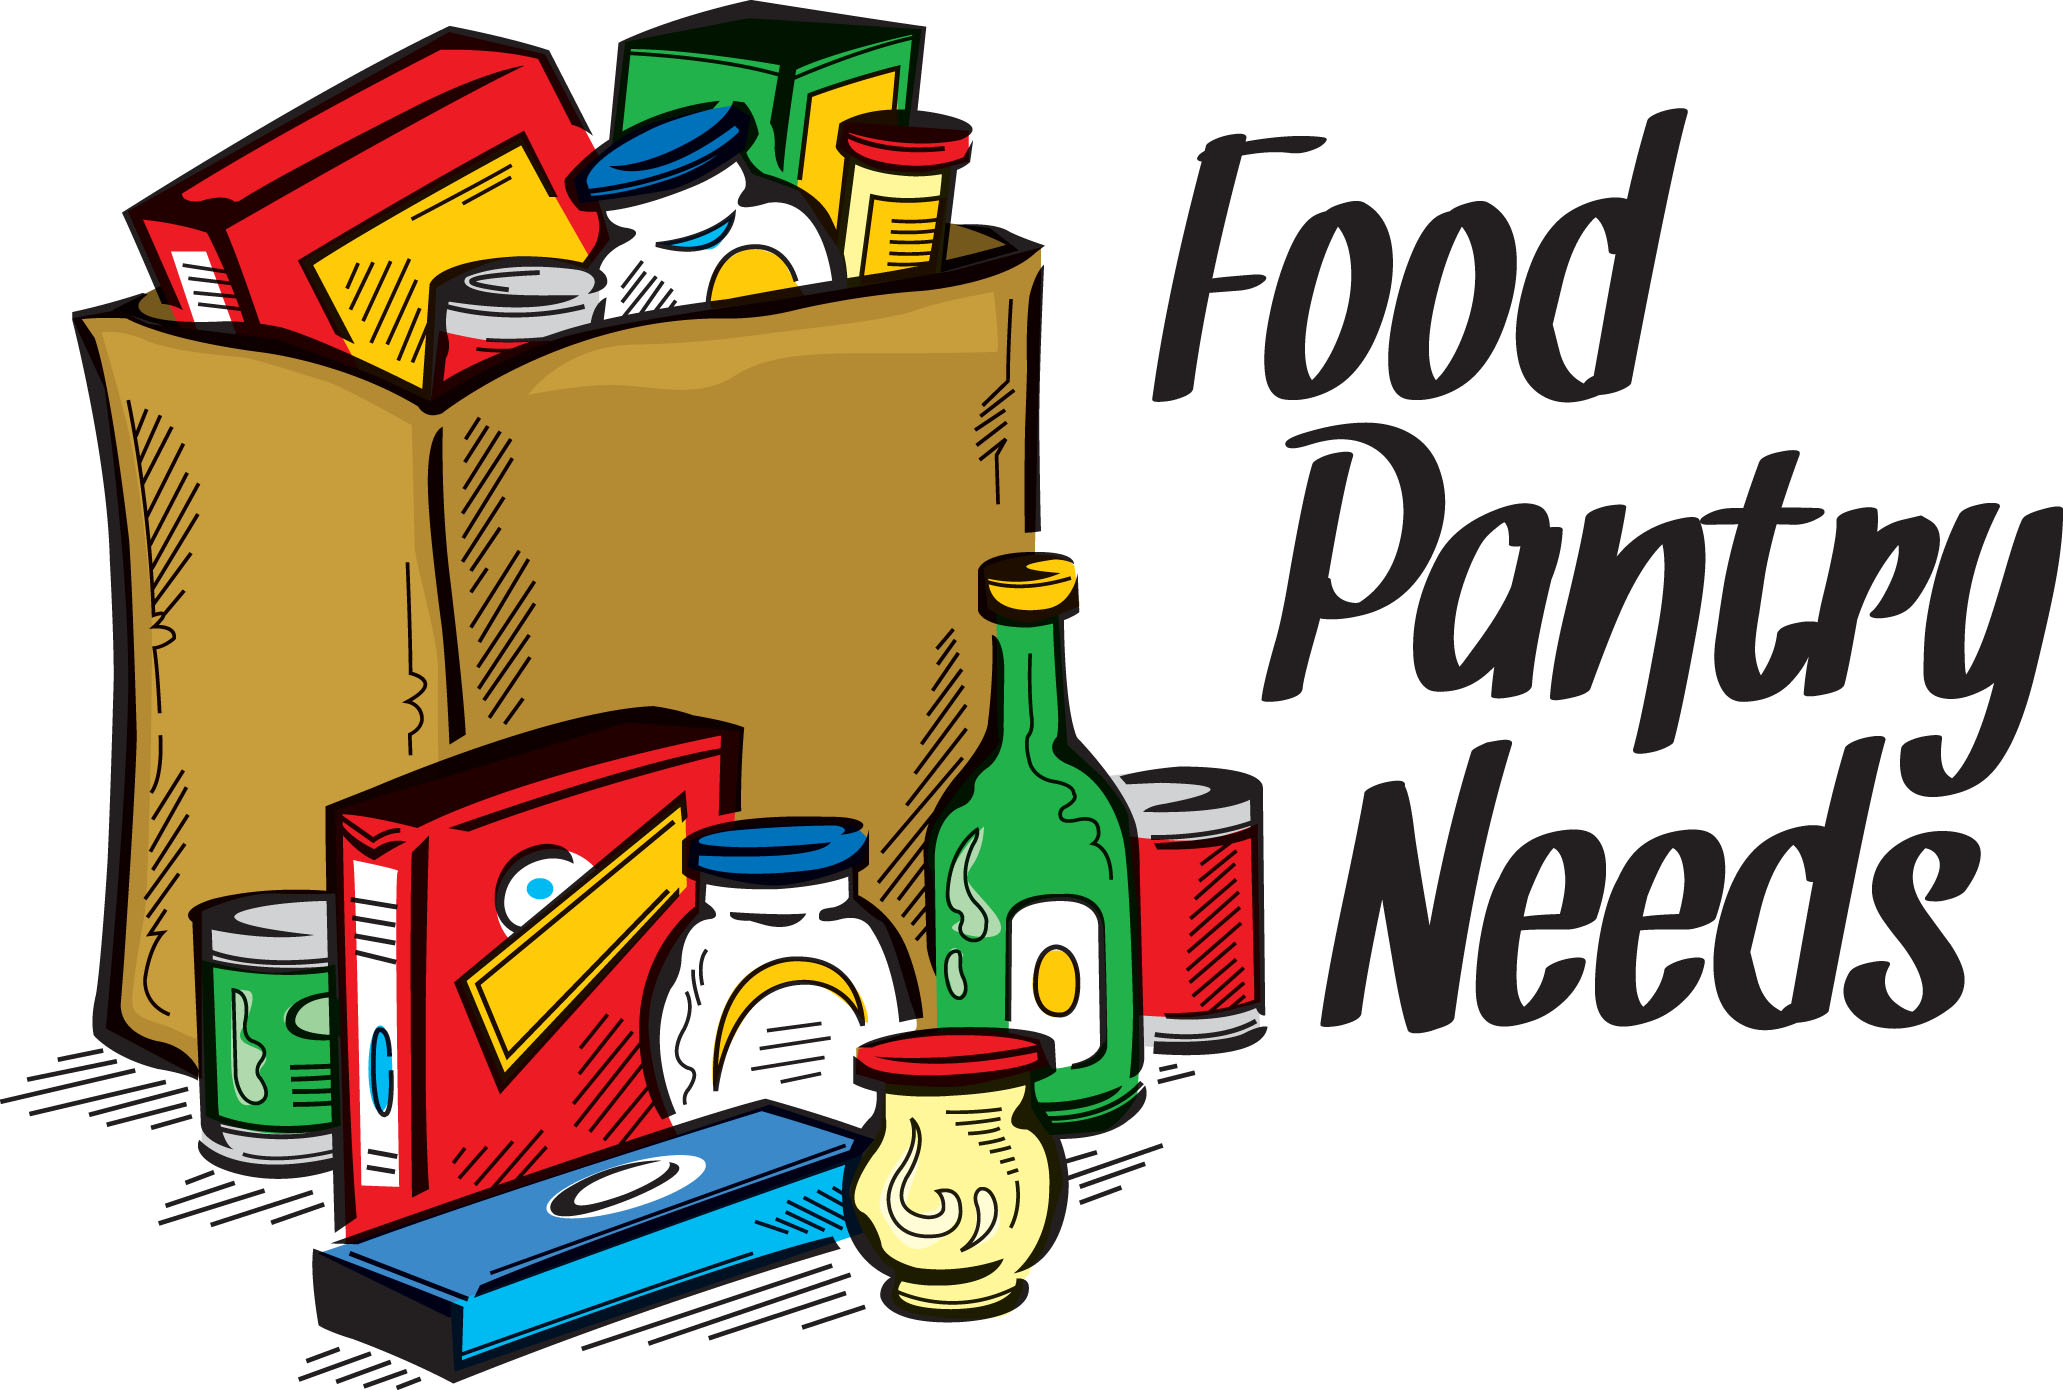 clipart food pantry